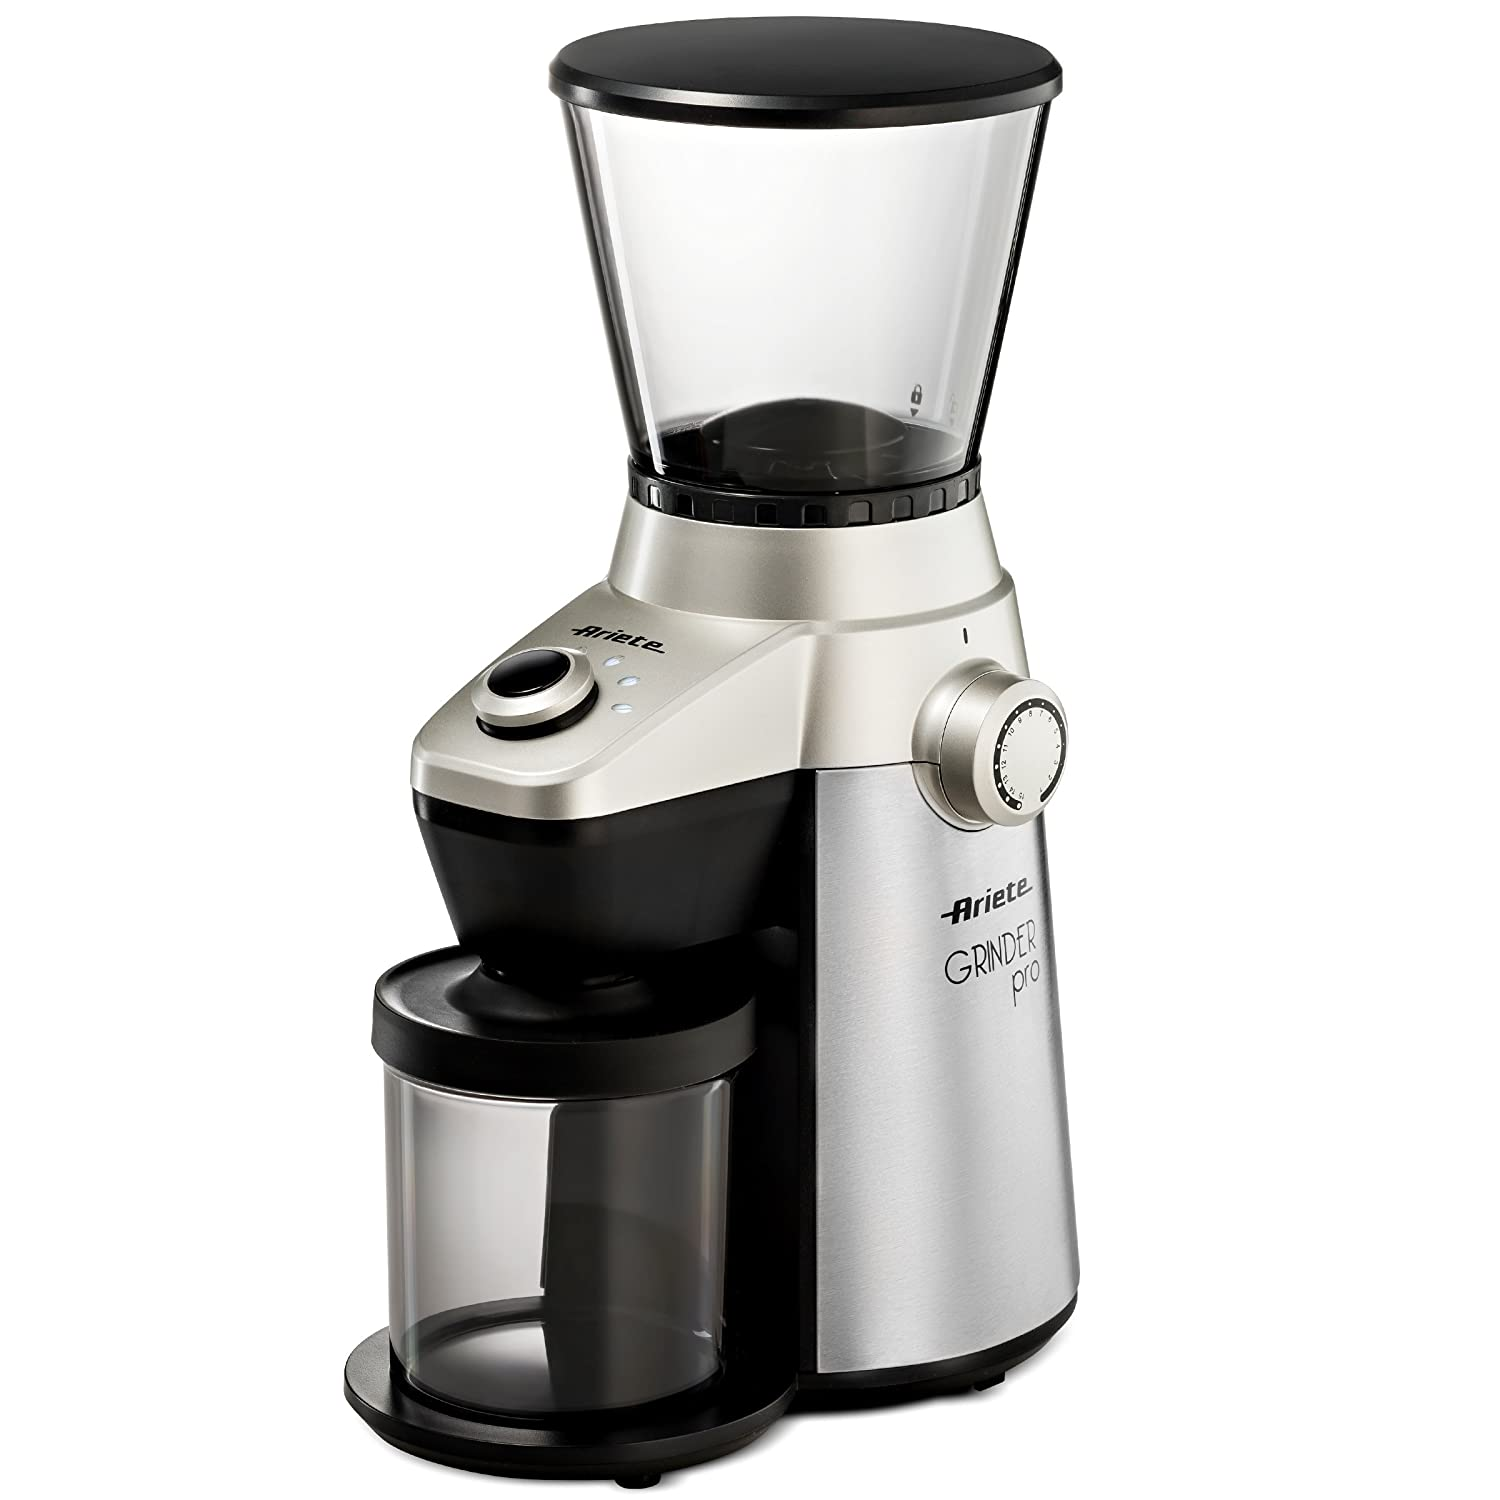 DeLonghi Ariete Ariete -Delonghi Electric Coffee Grinder - Professional Heavy Duty Stainless Steel Conical Burr - Ultra Fine Grind Adjustable Cup Size 15 Fine - Coarse Grind Size Settings 3017